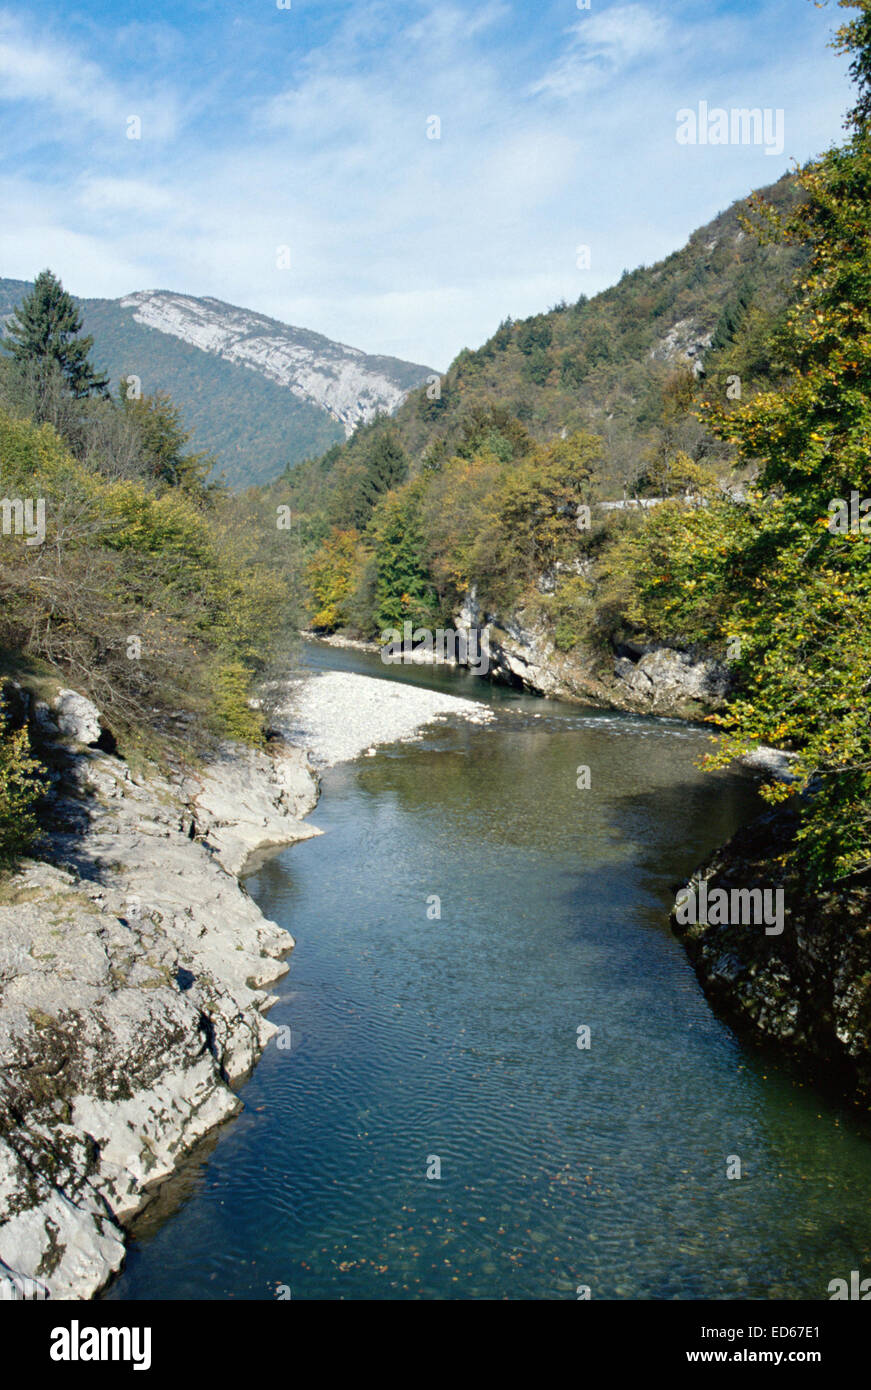 Vertical view of River of Fier and mountains in Thones valley near Annecy, in Savoy, France - Stock Image